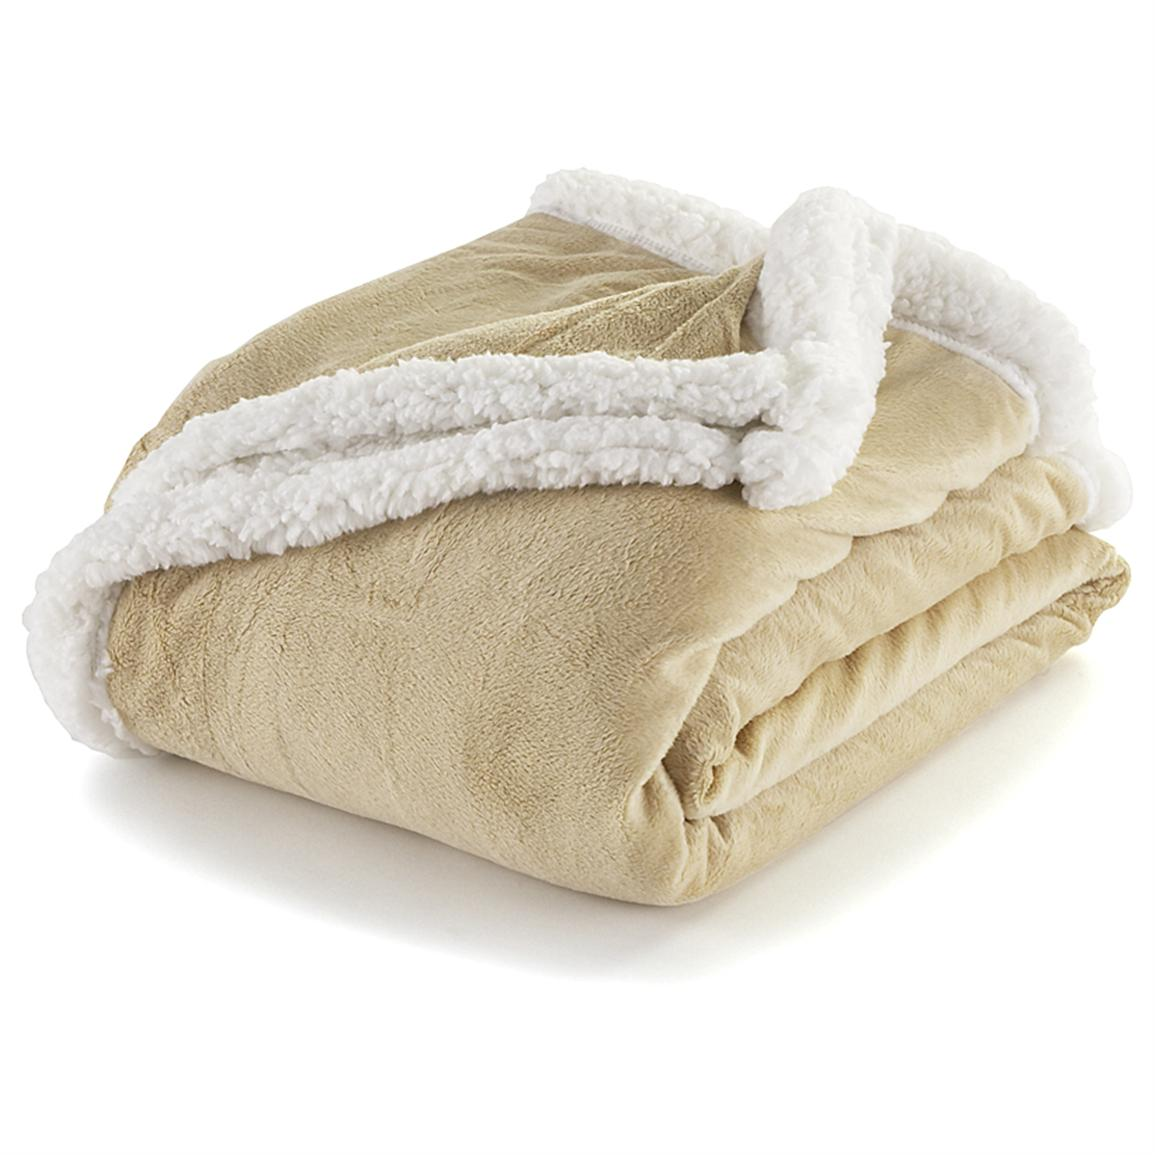 Throw Blankets: Add a touch of warmth to your bed with a craftily placed throw blanket. Free Shipping on orders over $45!